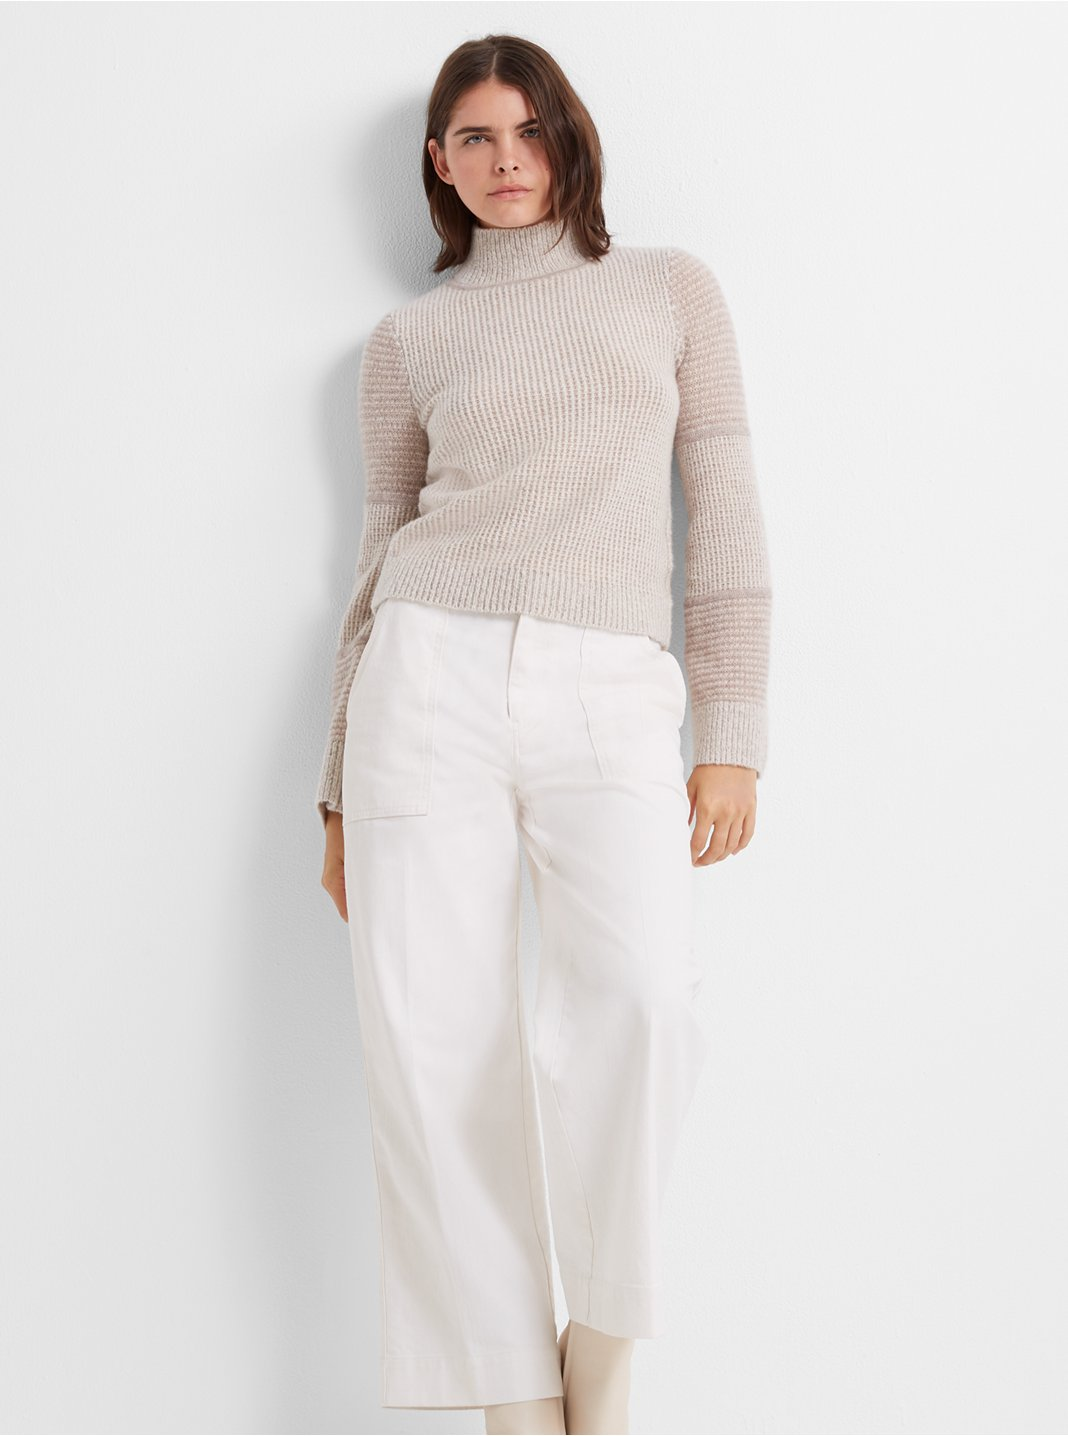 Peterella Cashmere Sweater